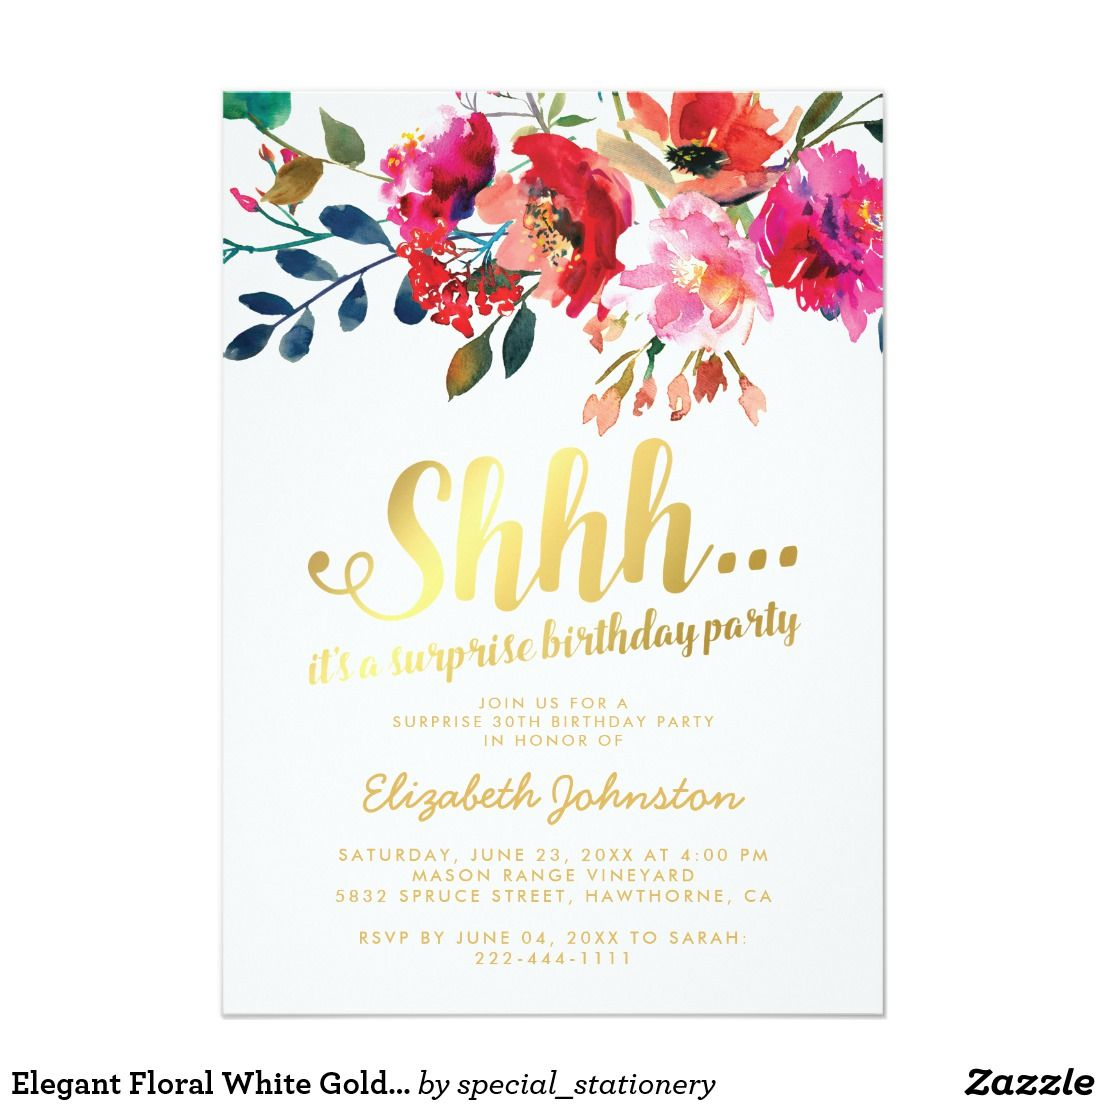 Elegant Floral White Gold Surprise Birthday Party Card Birthdayparty Birthdaygirl Decor